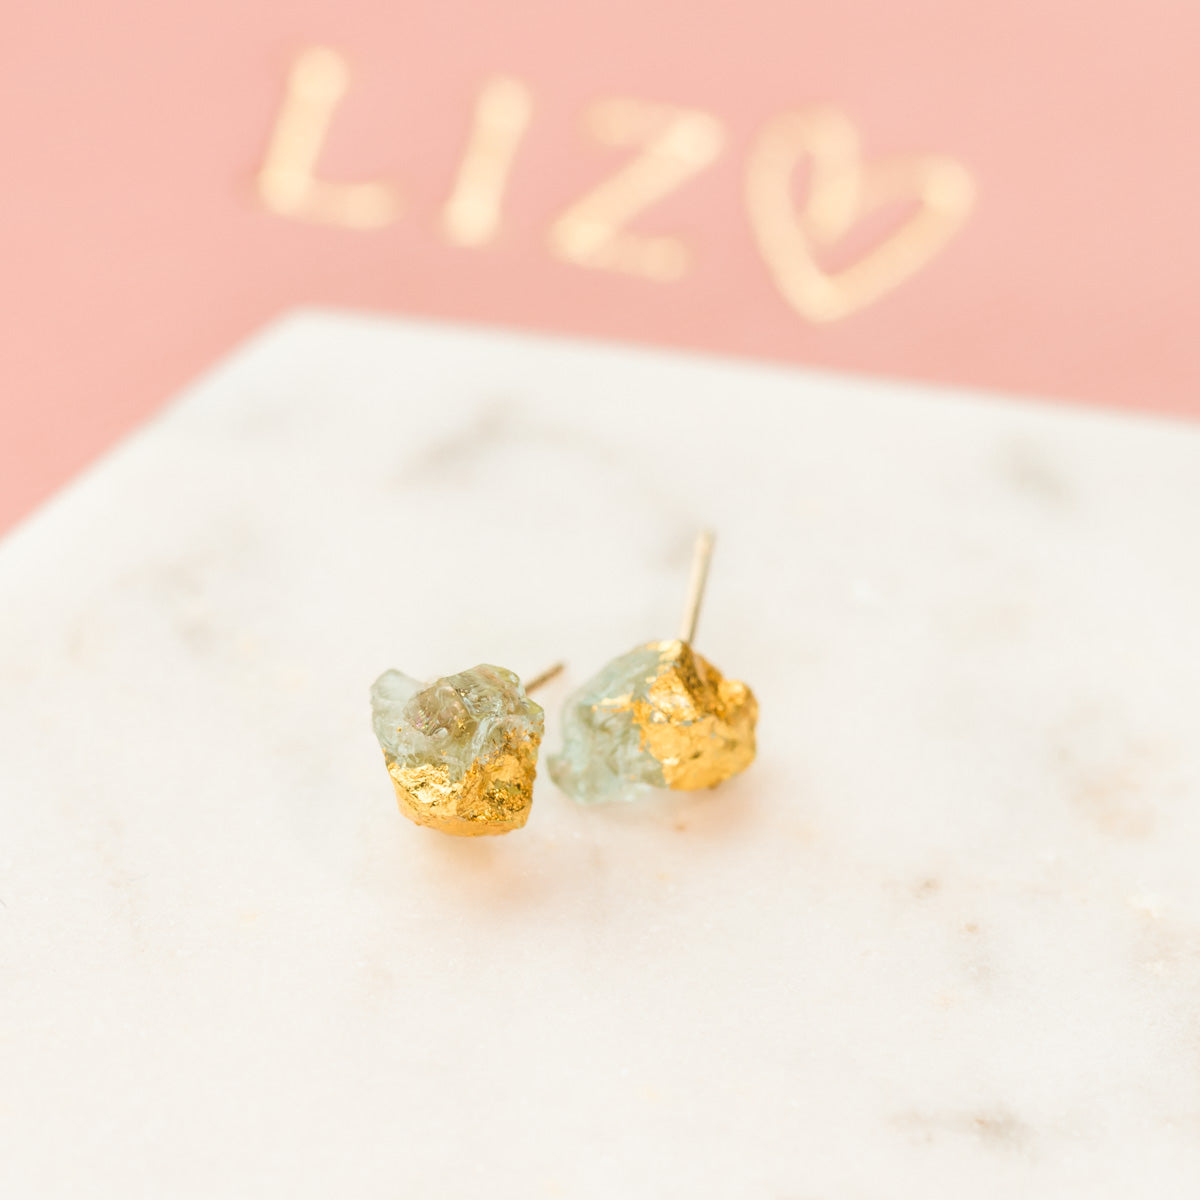 Aquamarine Earrings, Raw Aquamarine Earrings, Gold Dipped Aquamarine Earrings, Gold Aquamarine Earrings, Natural Aquamarine Earrings, Aquamarine Stud Earrings, Gemstone Earrings, Liz.Beth Jewelry Co.